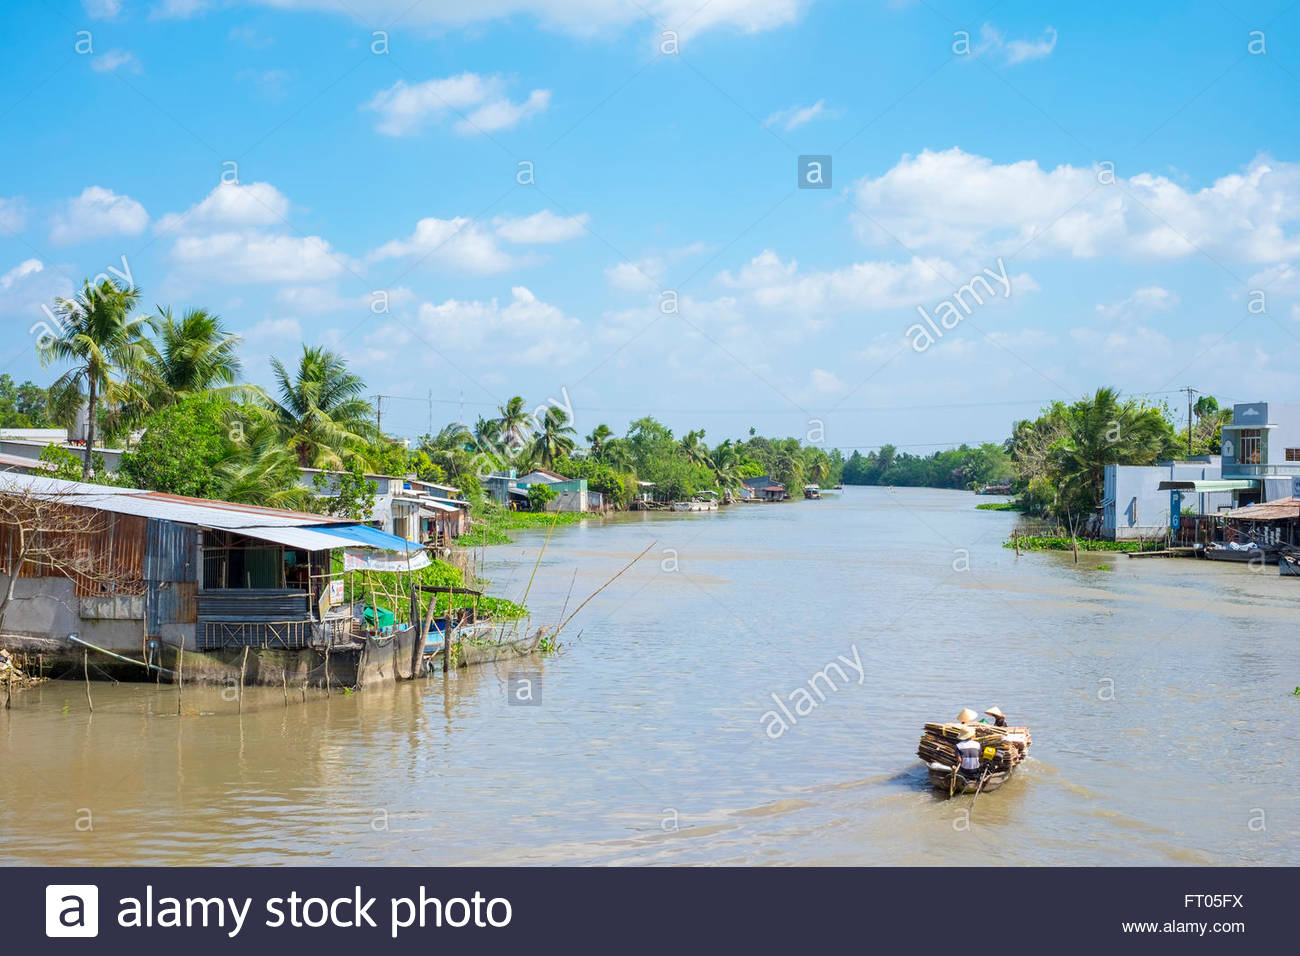 Mekong River delta, Phong Dien District, Can Tho, Vietnam - Stock Image